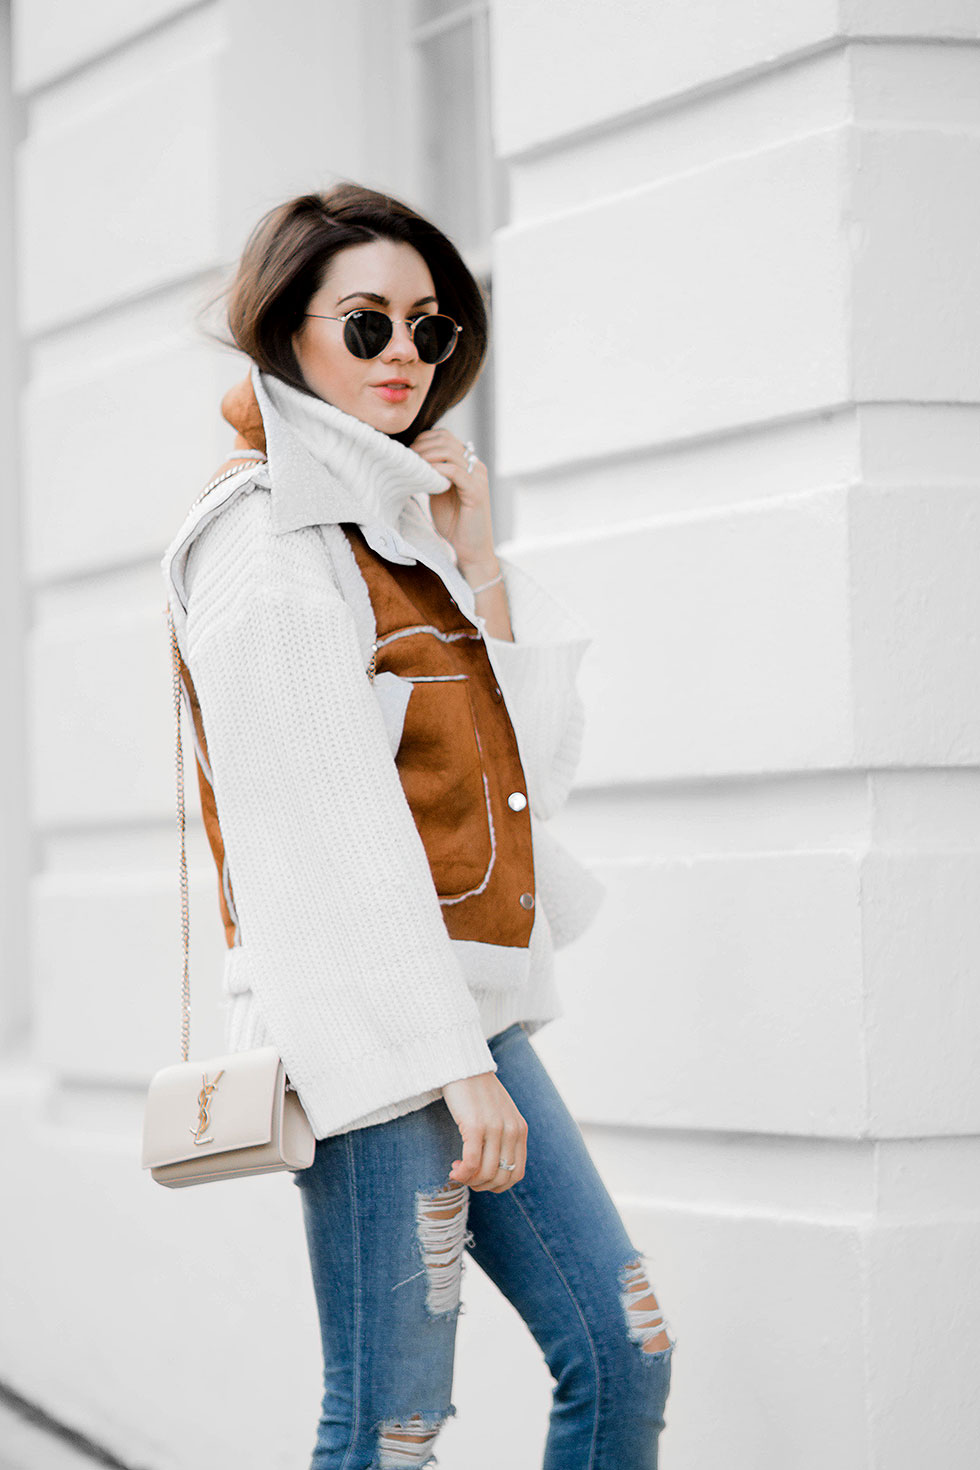 shearling vest outfit idea for winter --- featuring Rachel Zoe Jordy Turtleneck Sweater, Faux-Shearling Vest, Saint Laurent Monogramme Chain Shoulder Bag, Distressed Skinny Jeans, Ray Ban 50mm Retro Round Metal Sunglasses